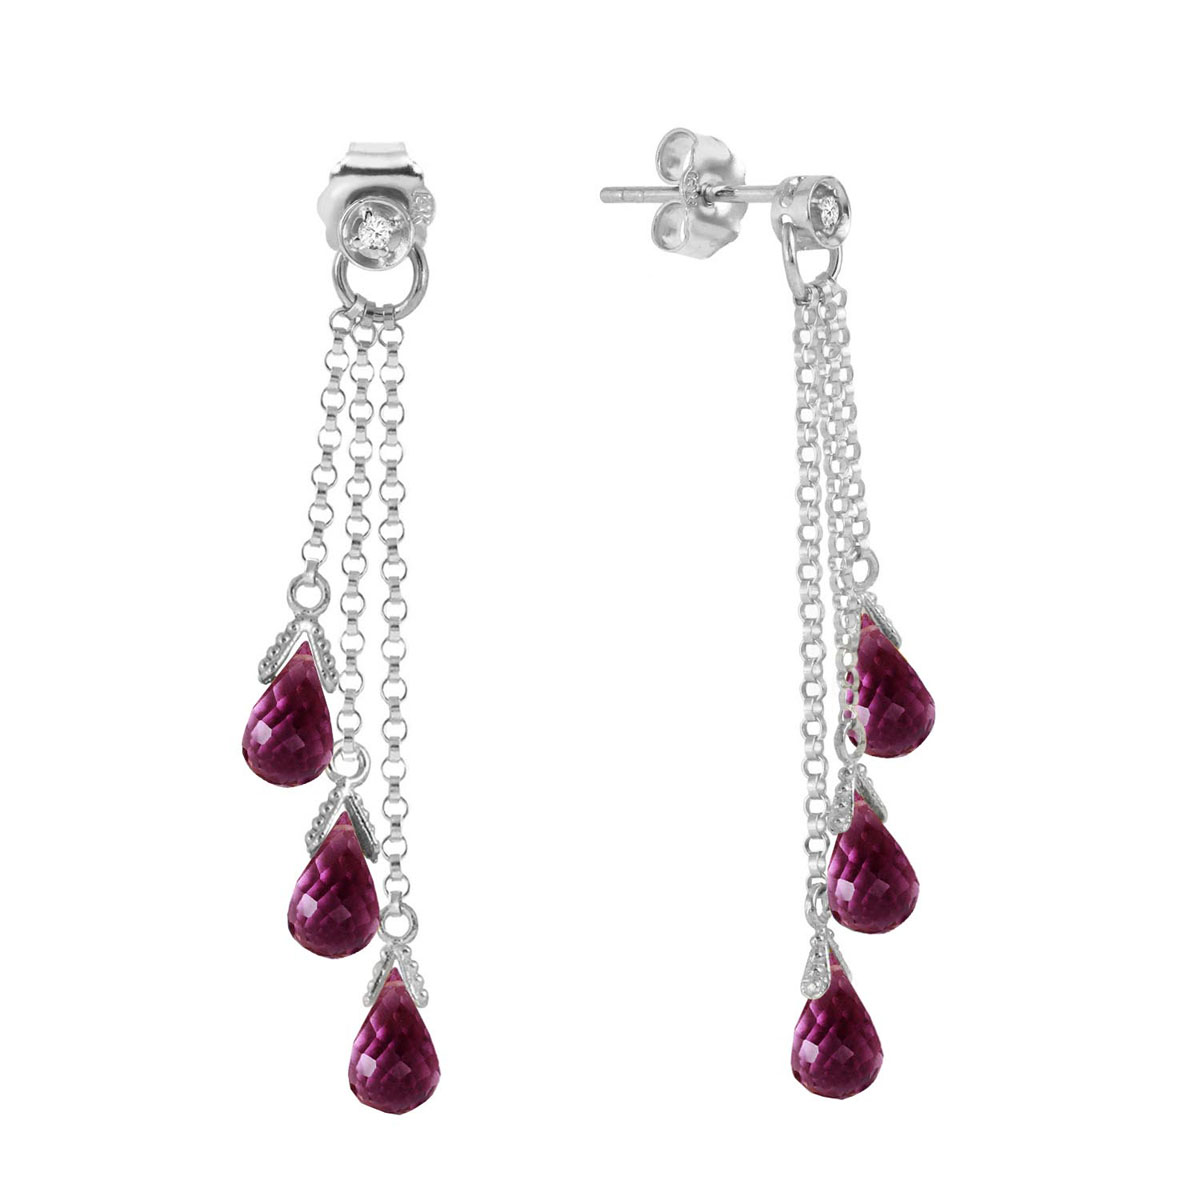 Amethyst & Diamond Trilogy Droplet Earrings in 9ct White Gold